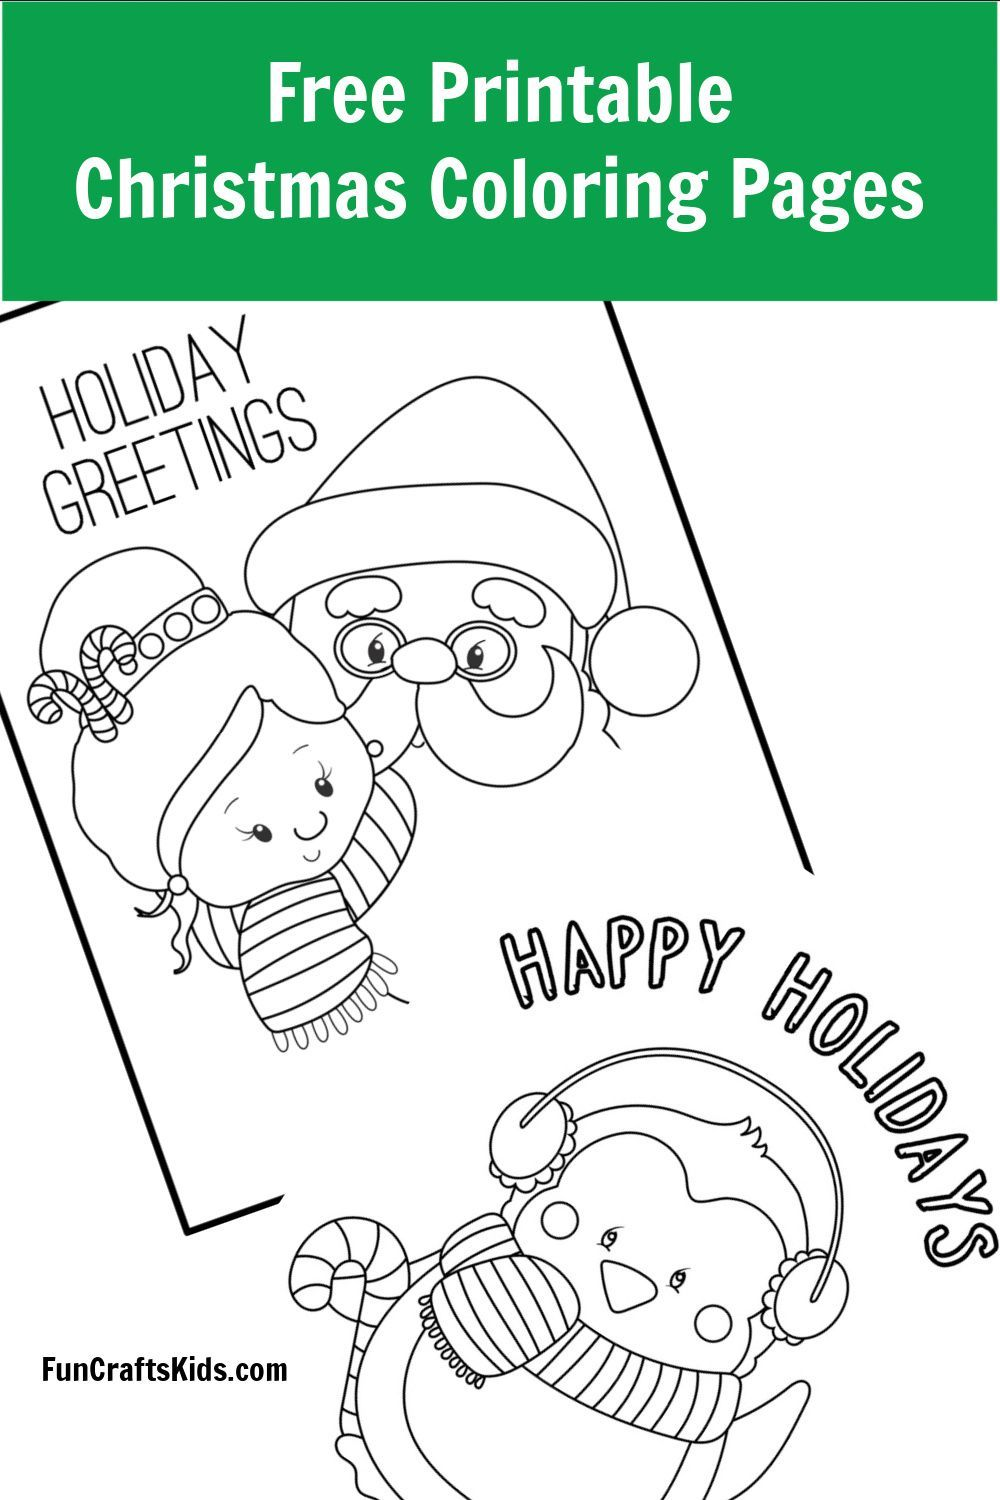 Free Printable Christmas Coloring Pages Fun Crafts Kids Printable Christmas Coloring Pages Christmas Coloring Pages Christmas Colors